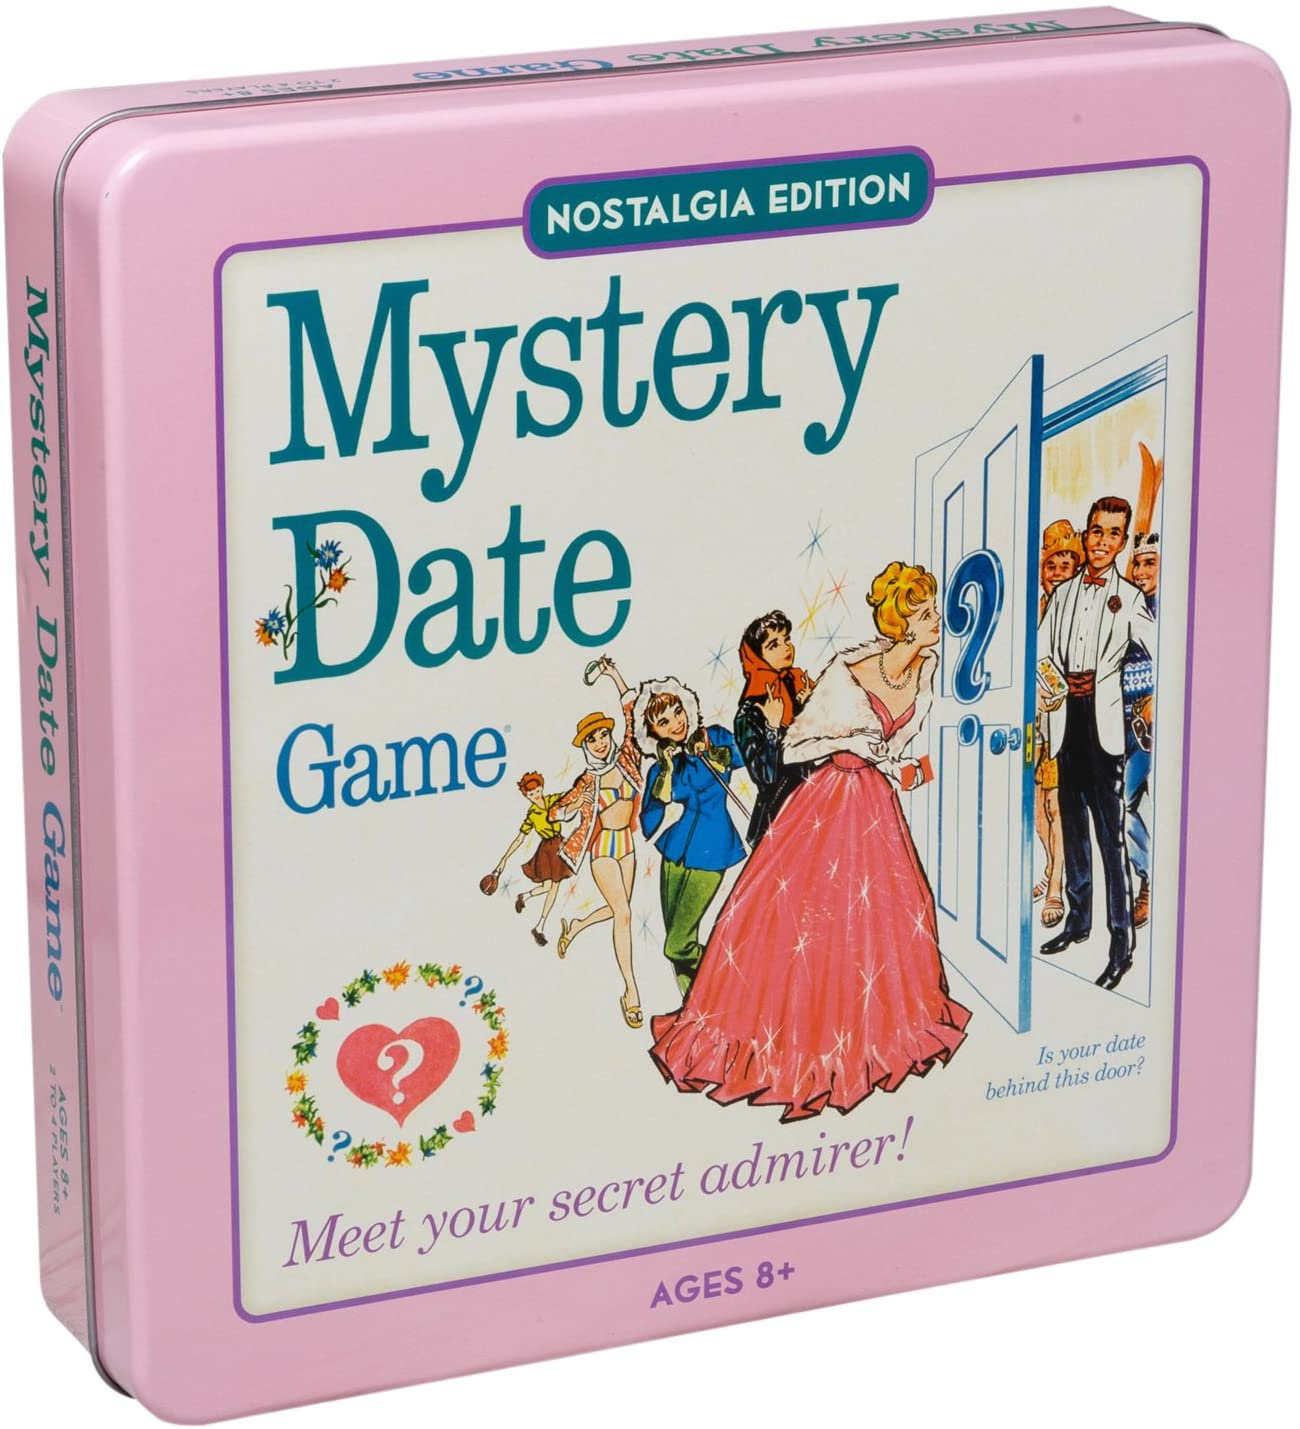 Mystery Date Classic Board Game With Nostalgic Tin Case by Winning Solutions: Amazon.es: Juguetes y juegos